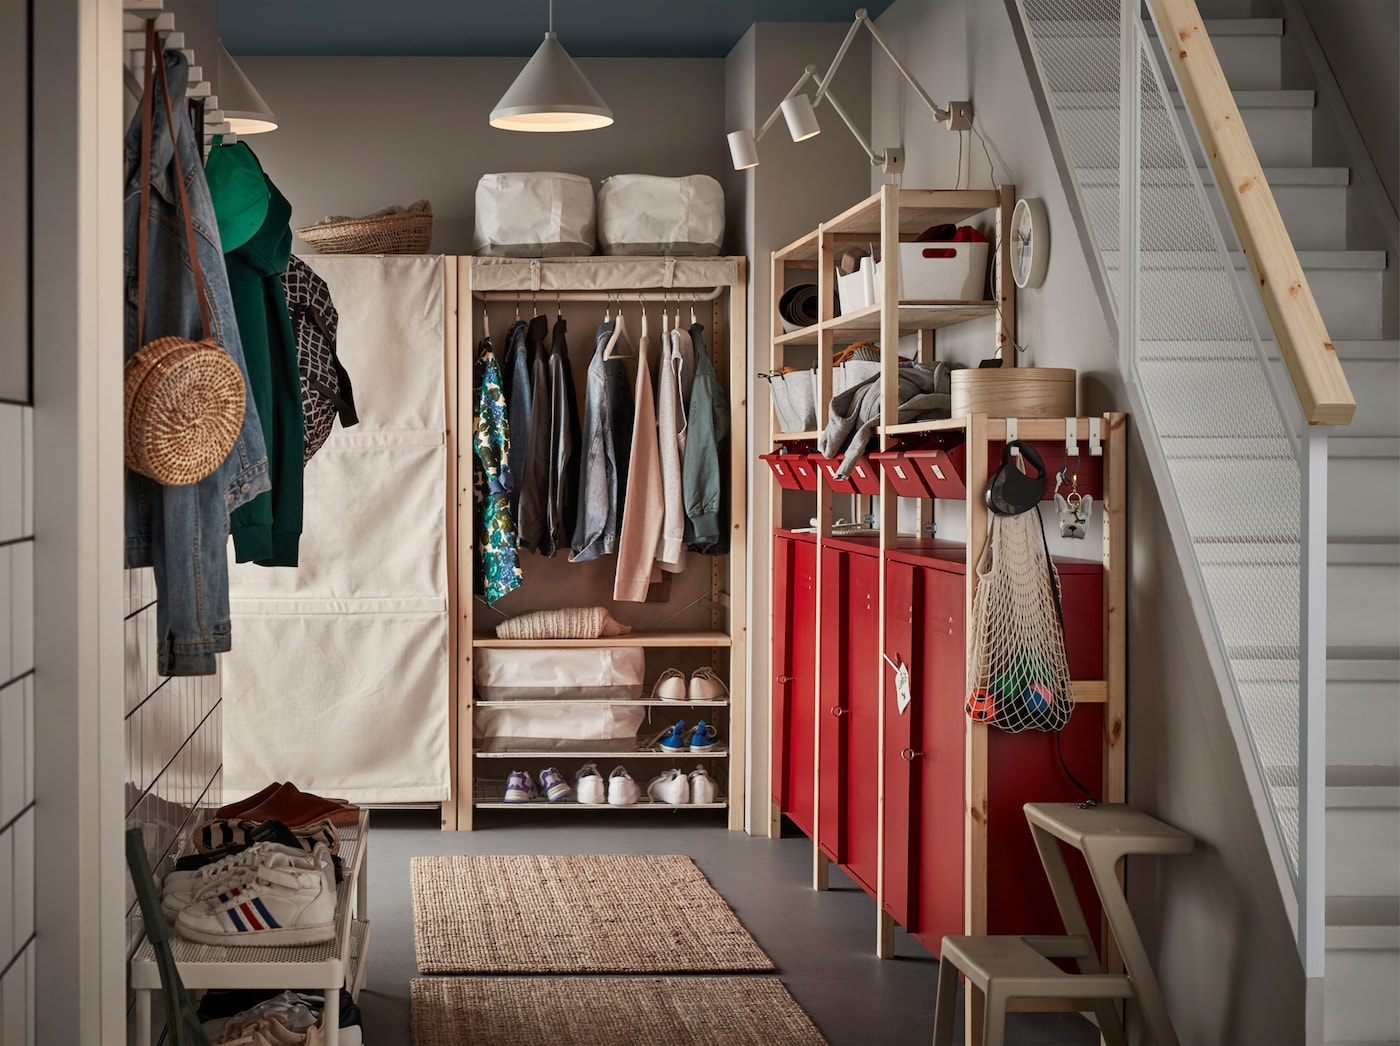 A hallway with red cabinets, white lamps, two jute rugs, white shoe racks and shelving units in beige and pine.